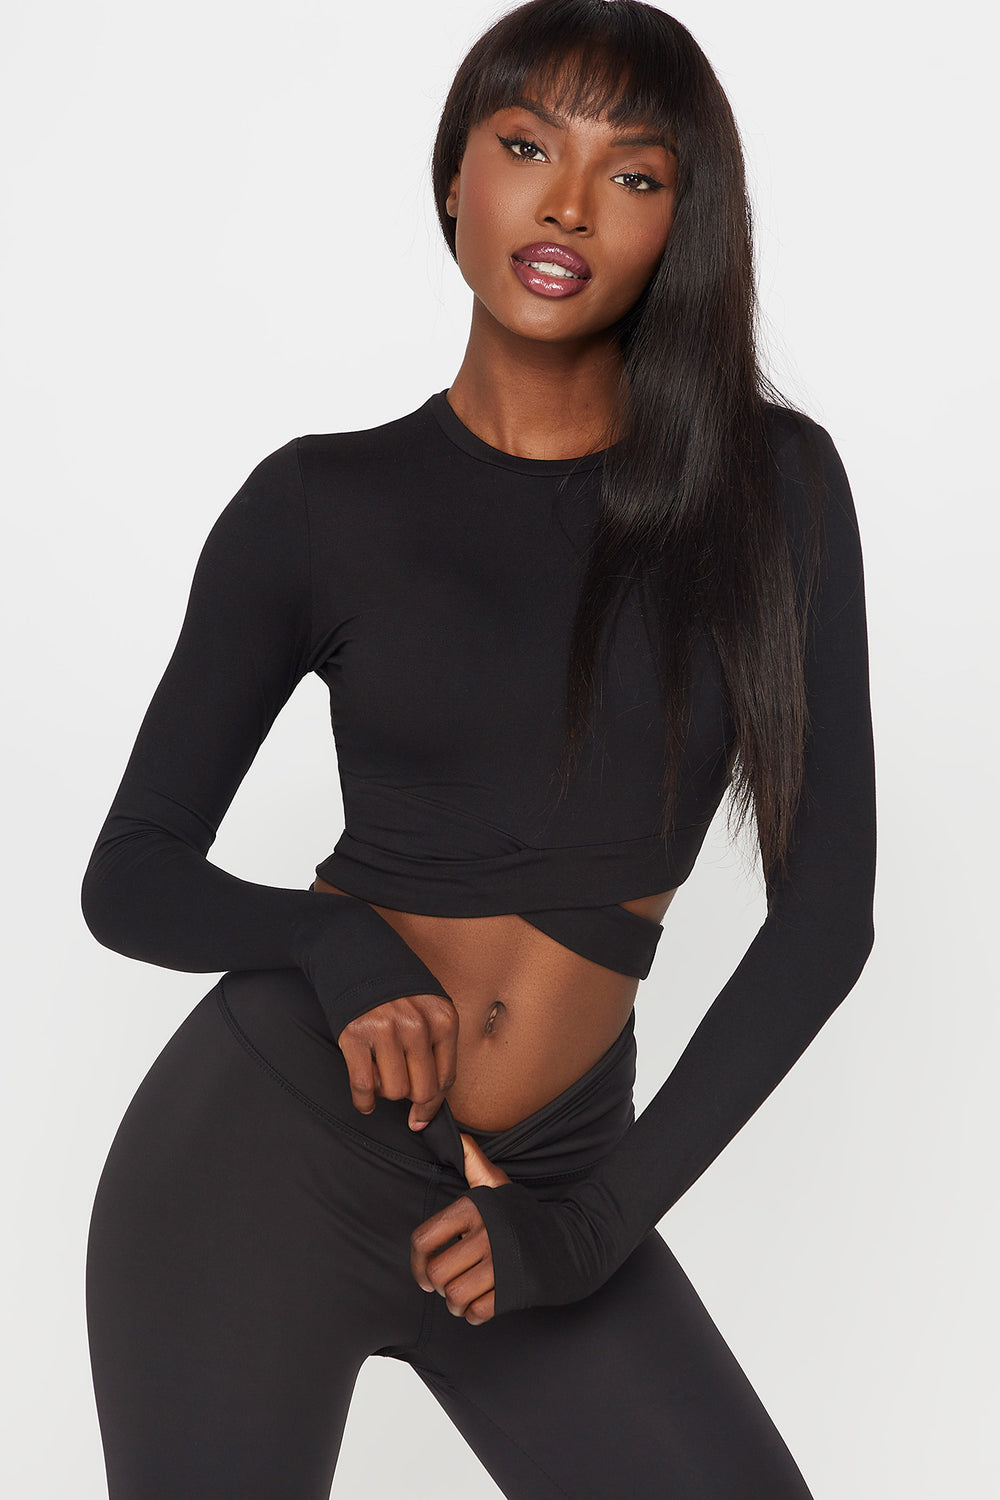 Soft Crisscross Cropped Active Long Sleeve Black